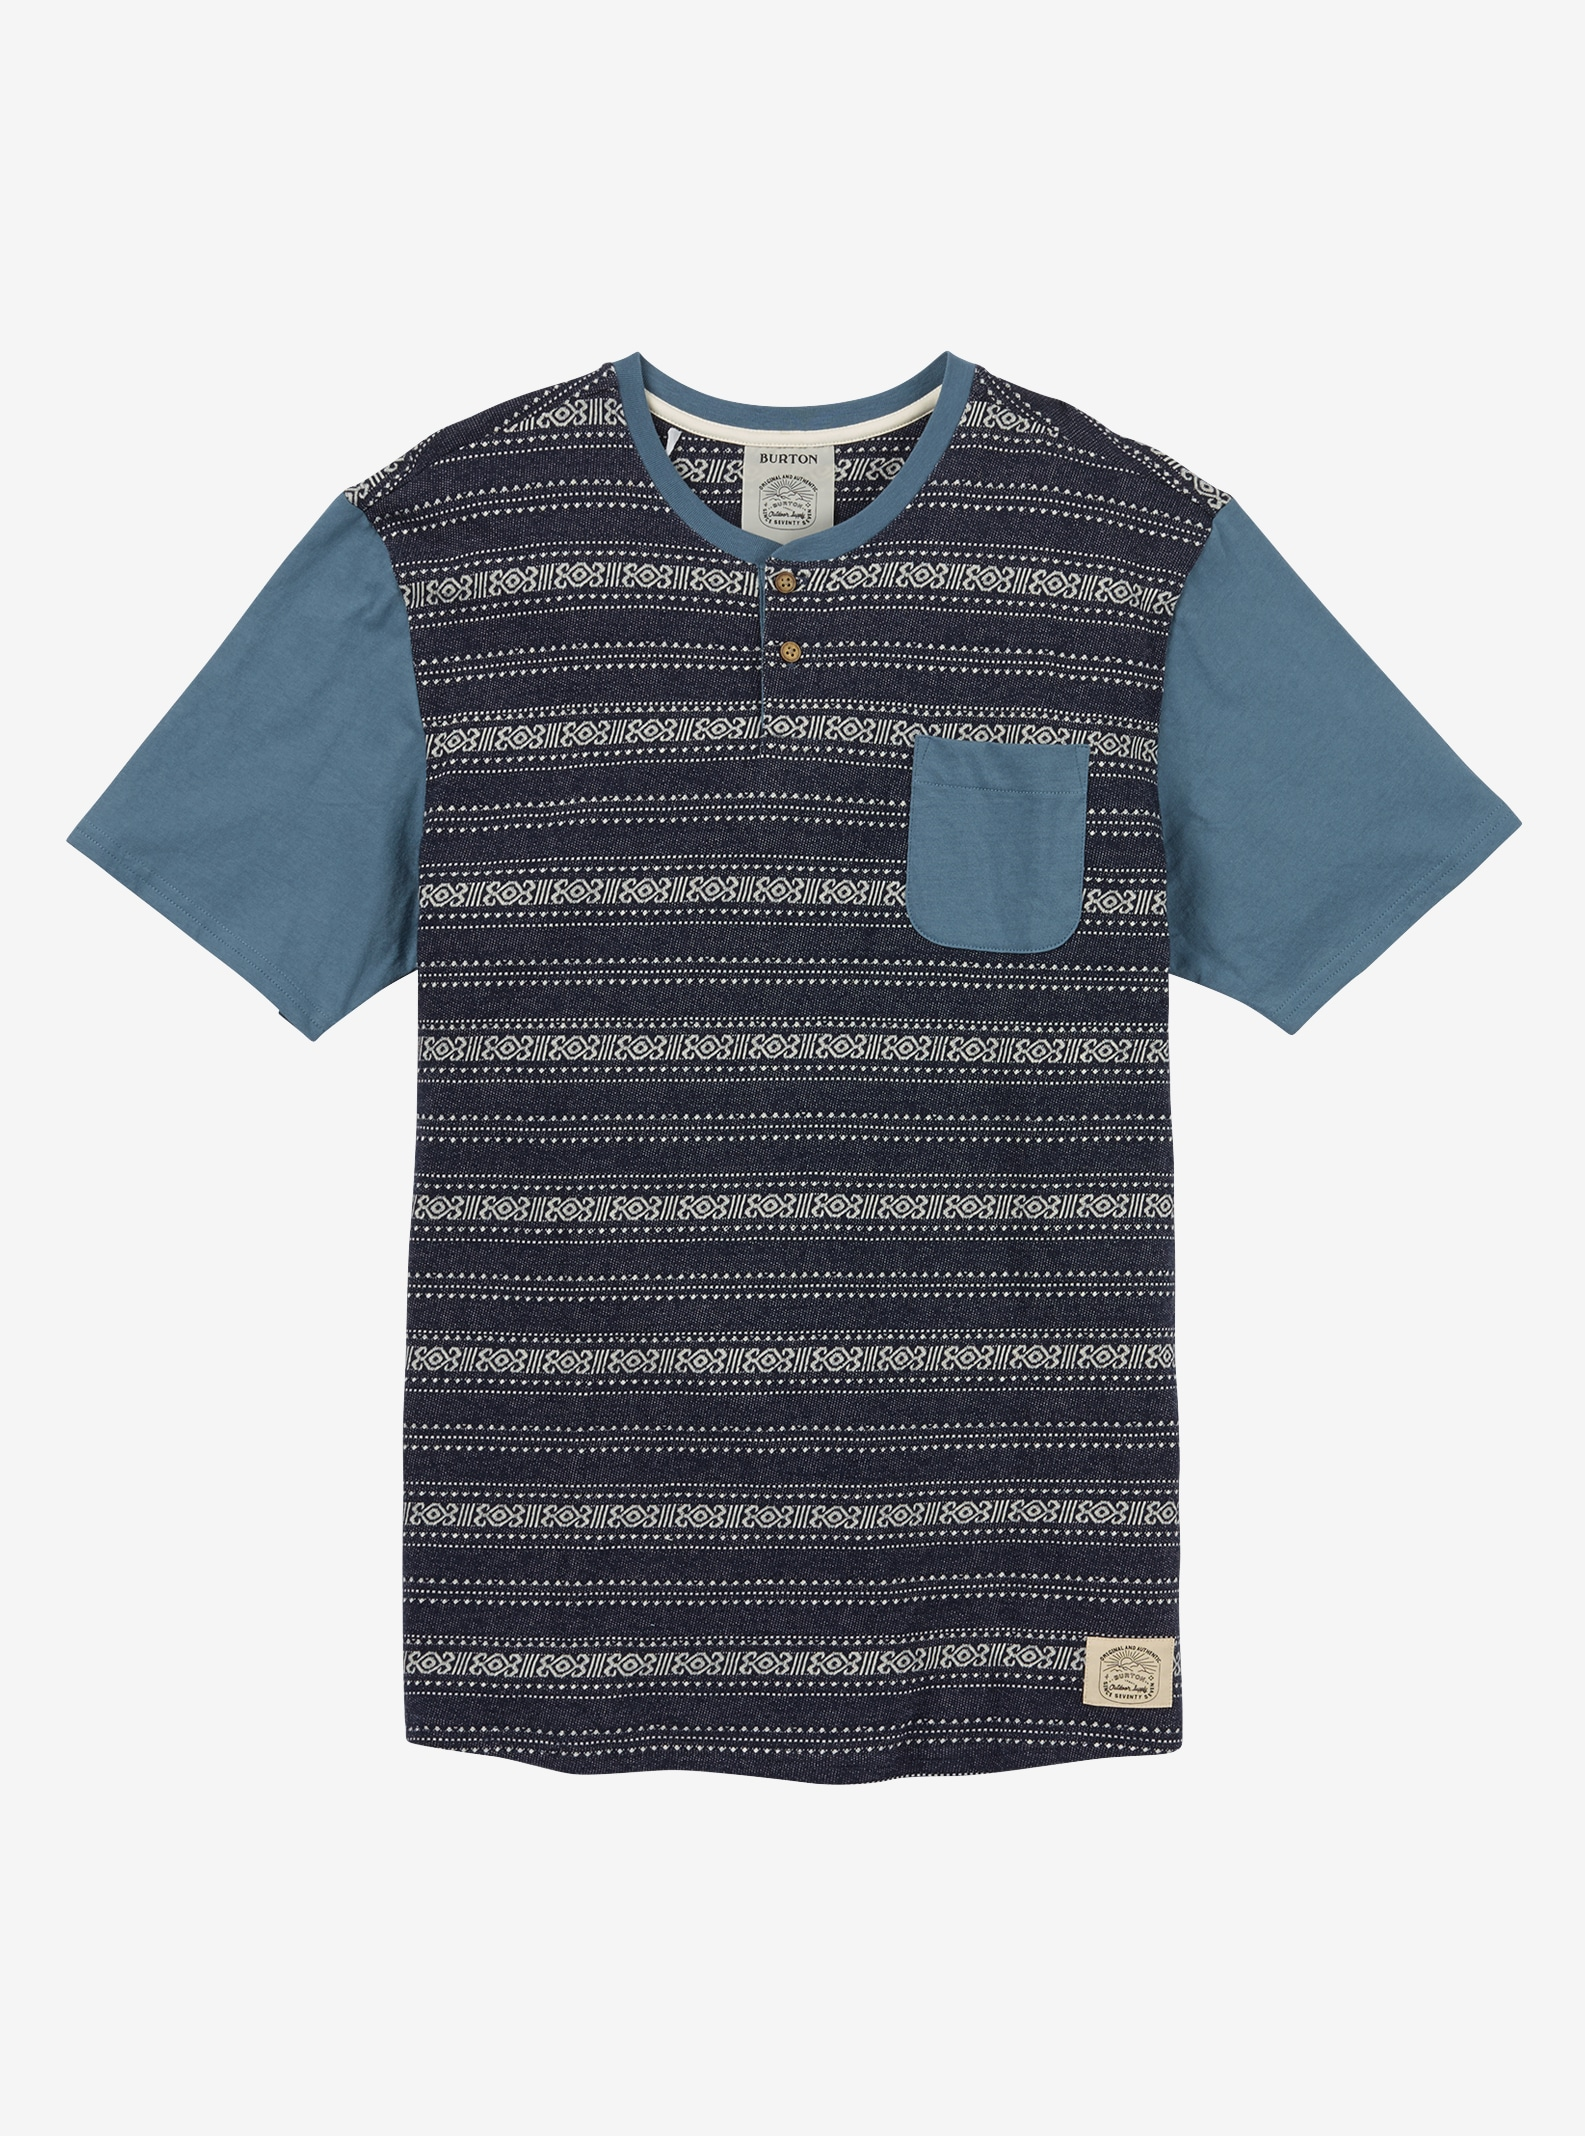 Men's Burton Dwight Short Sleeve T Shirt shown in Indigo